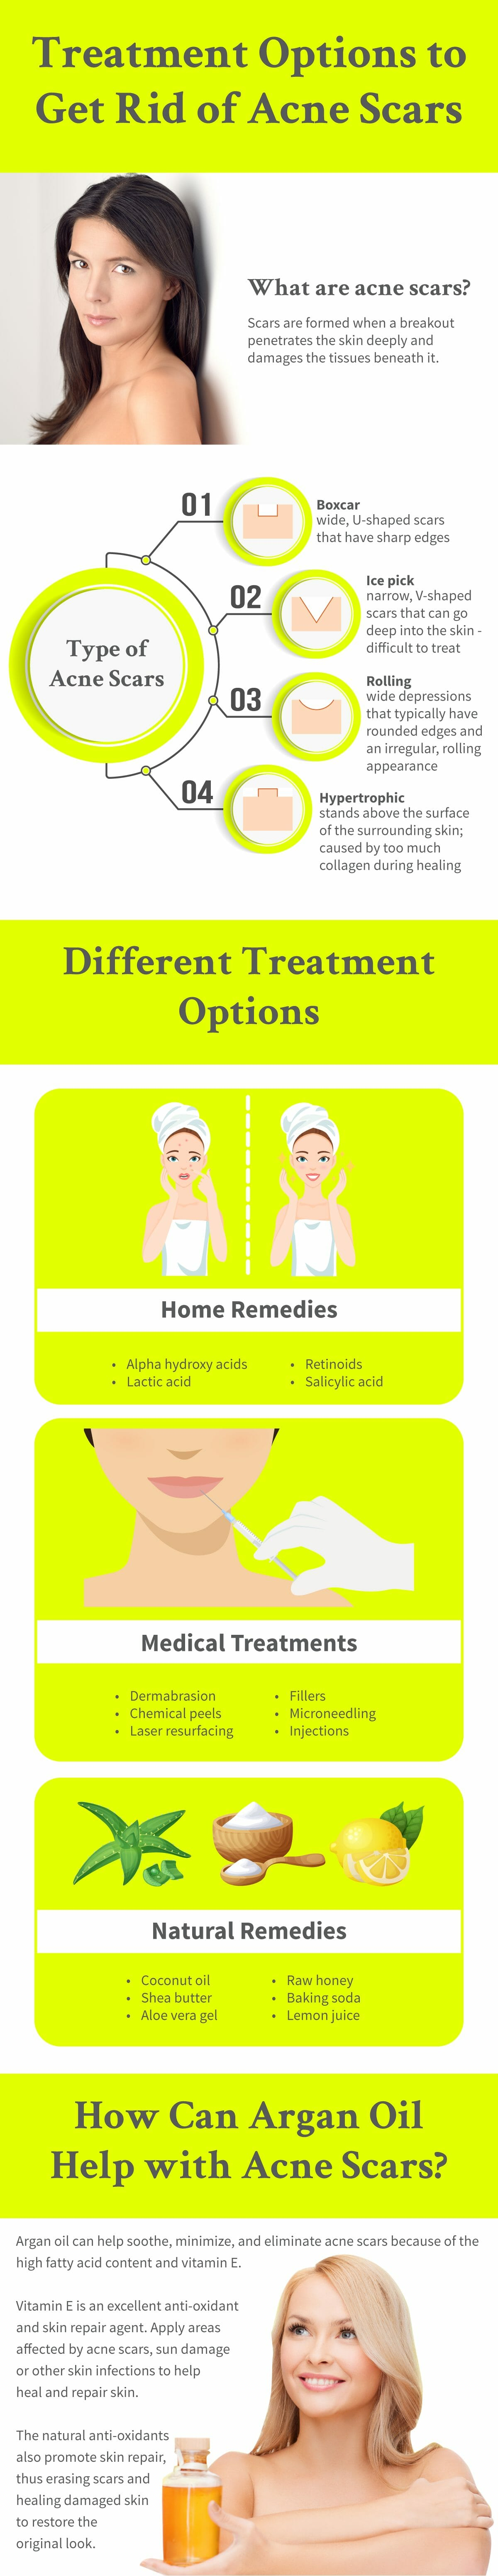 acne scars infographic